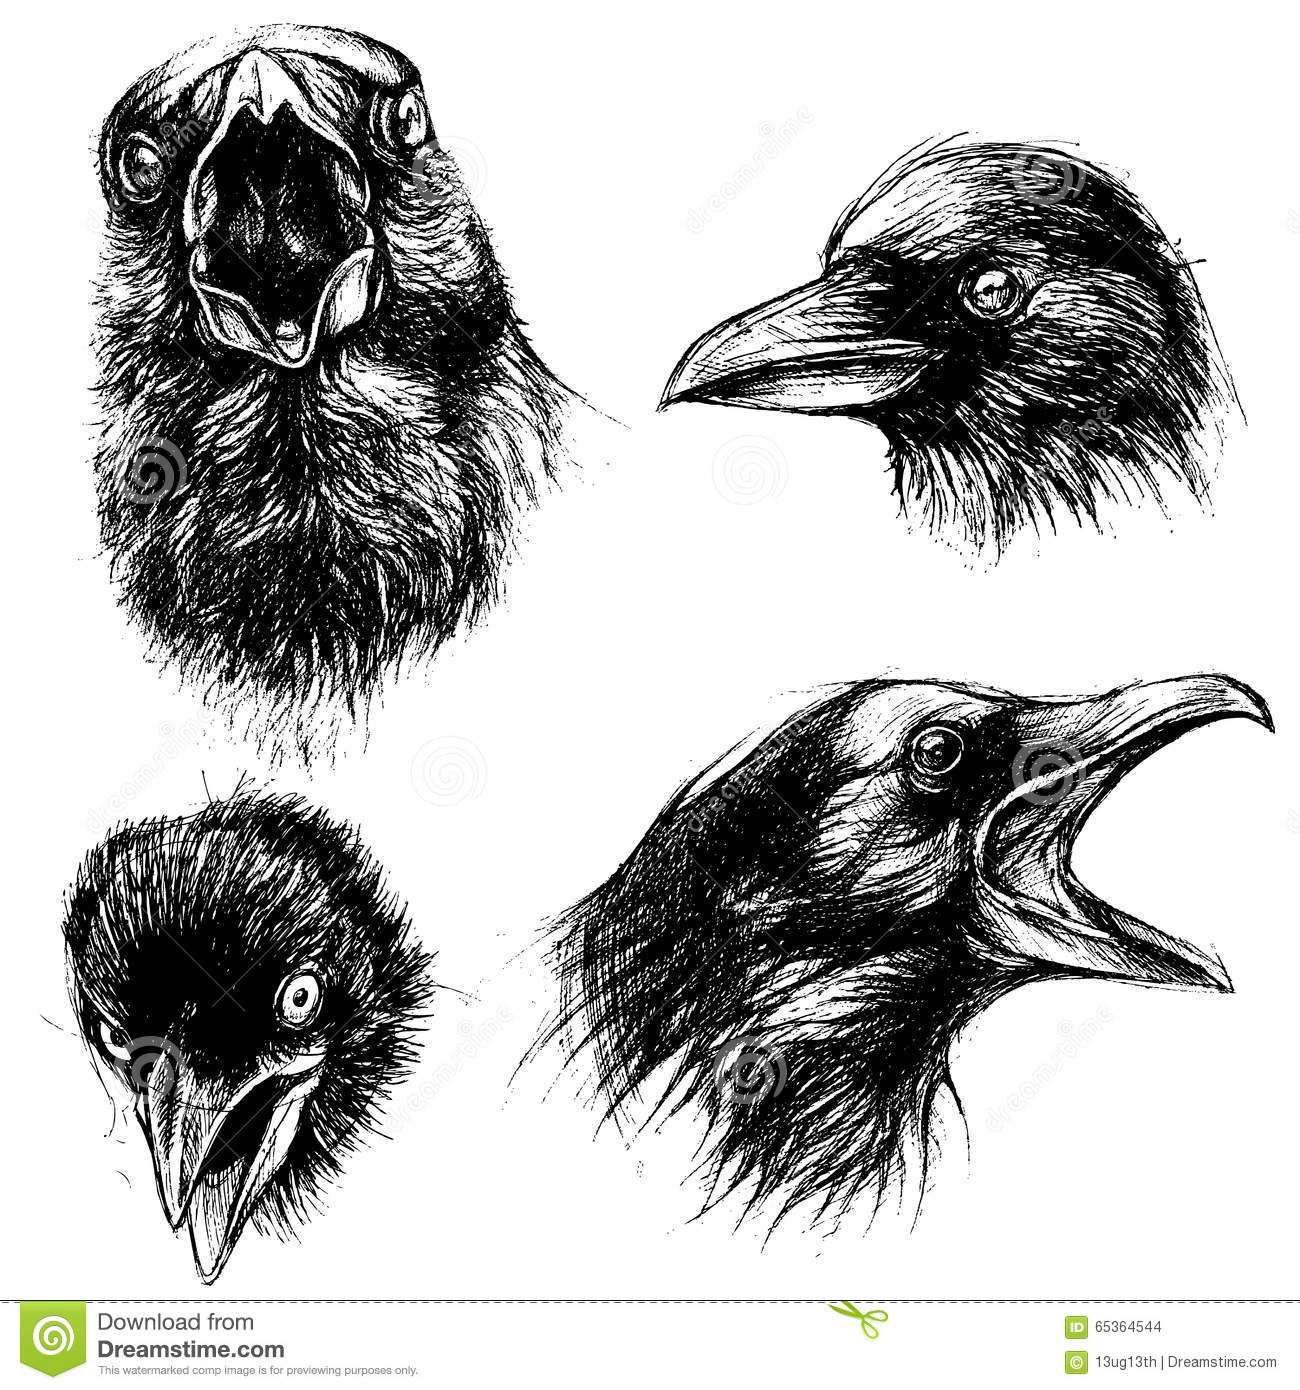 Drawing Lines Using Html : Crow head drawing line work vector illustration